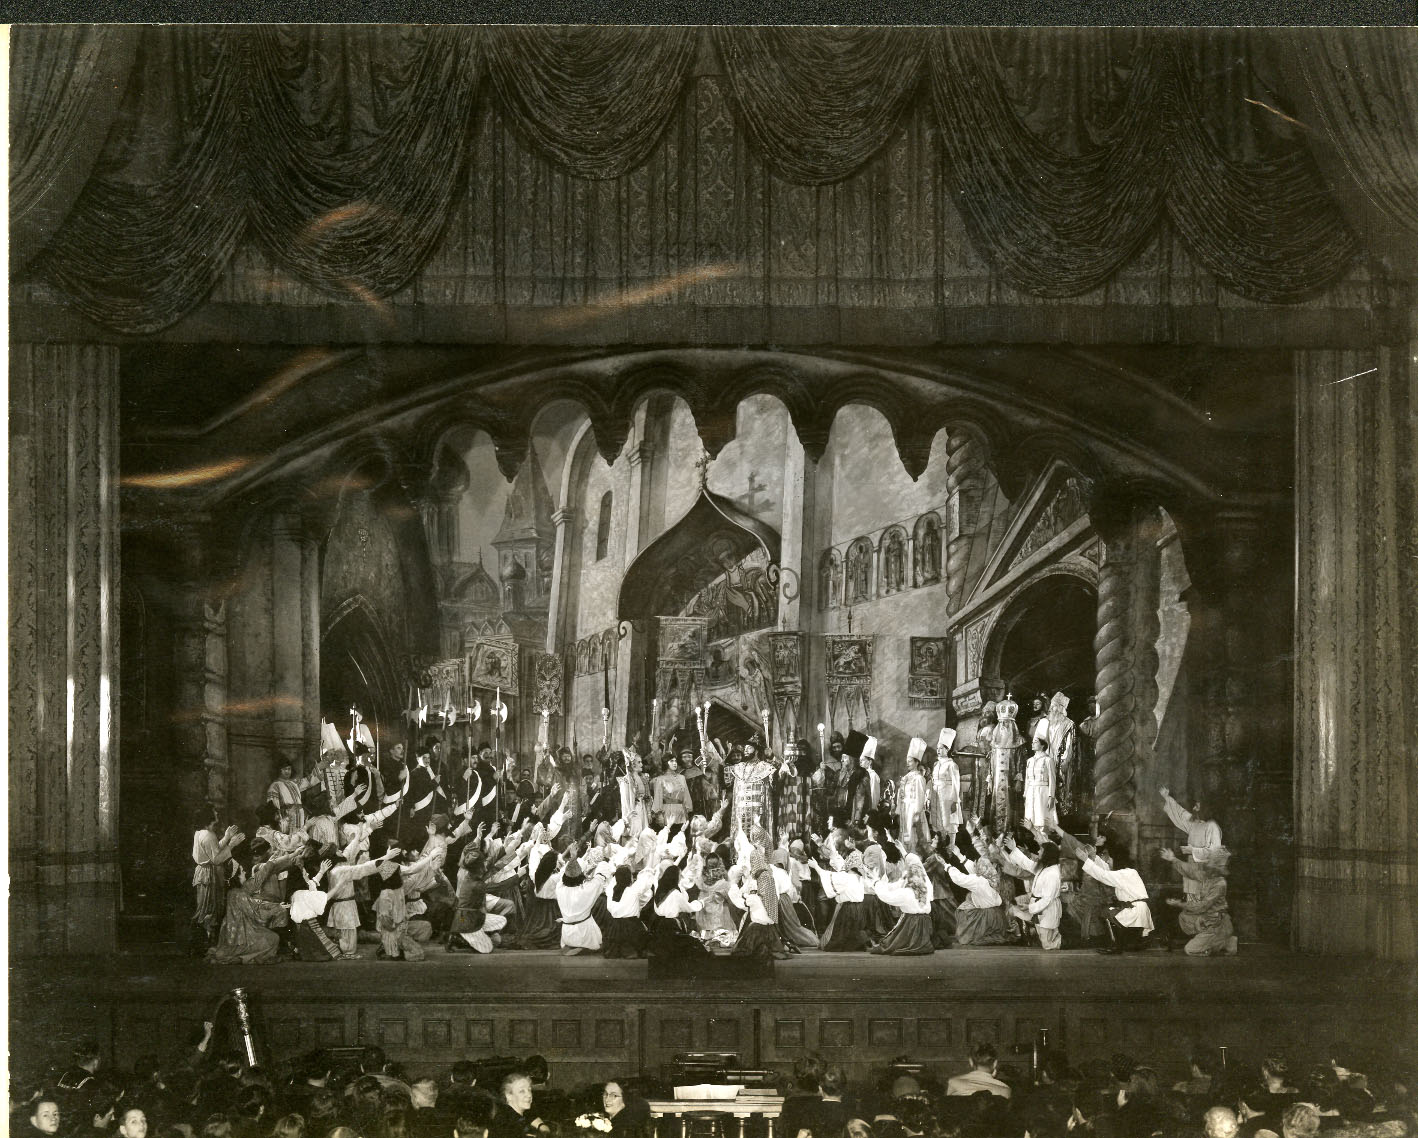 San Francisco Opera's 1945 production of Boris Godunov